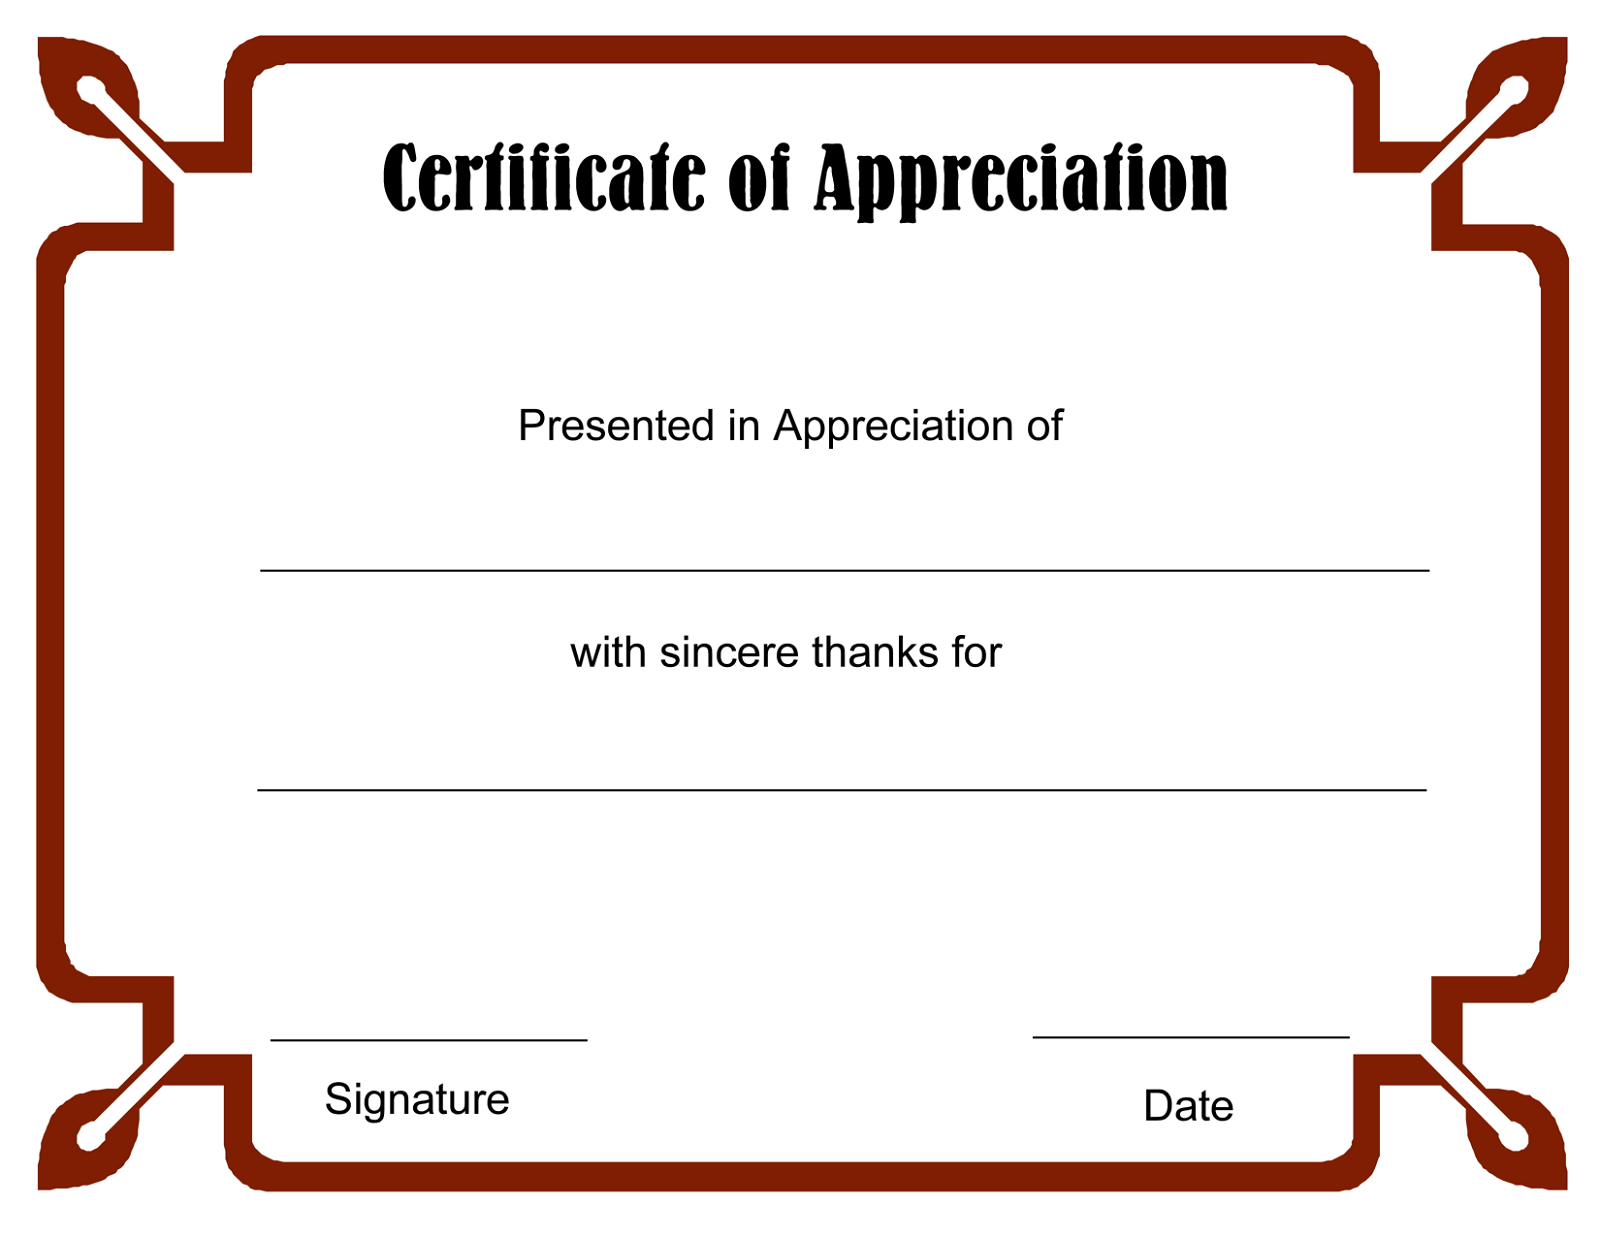 Free And High Quality Blank Certificate Templates Are Here For You Who Want  To Give Great Gifts And Rewards For Your Students, Children, Or Your Loved  Ones!  Free Appreciation Certificate Templates